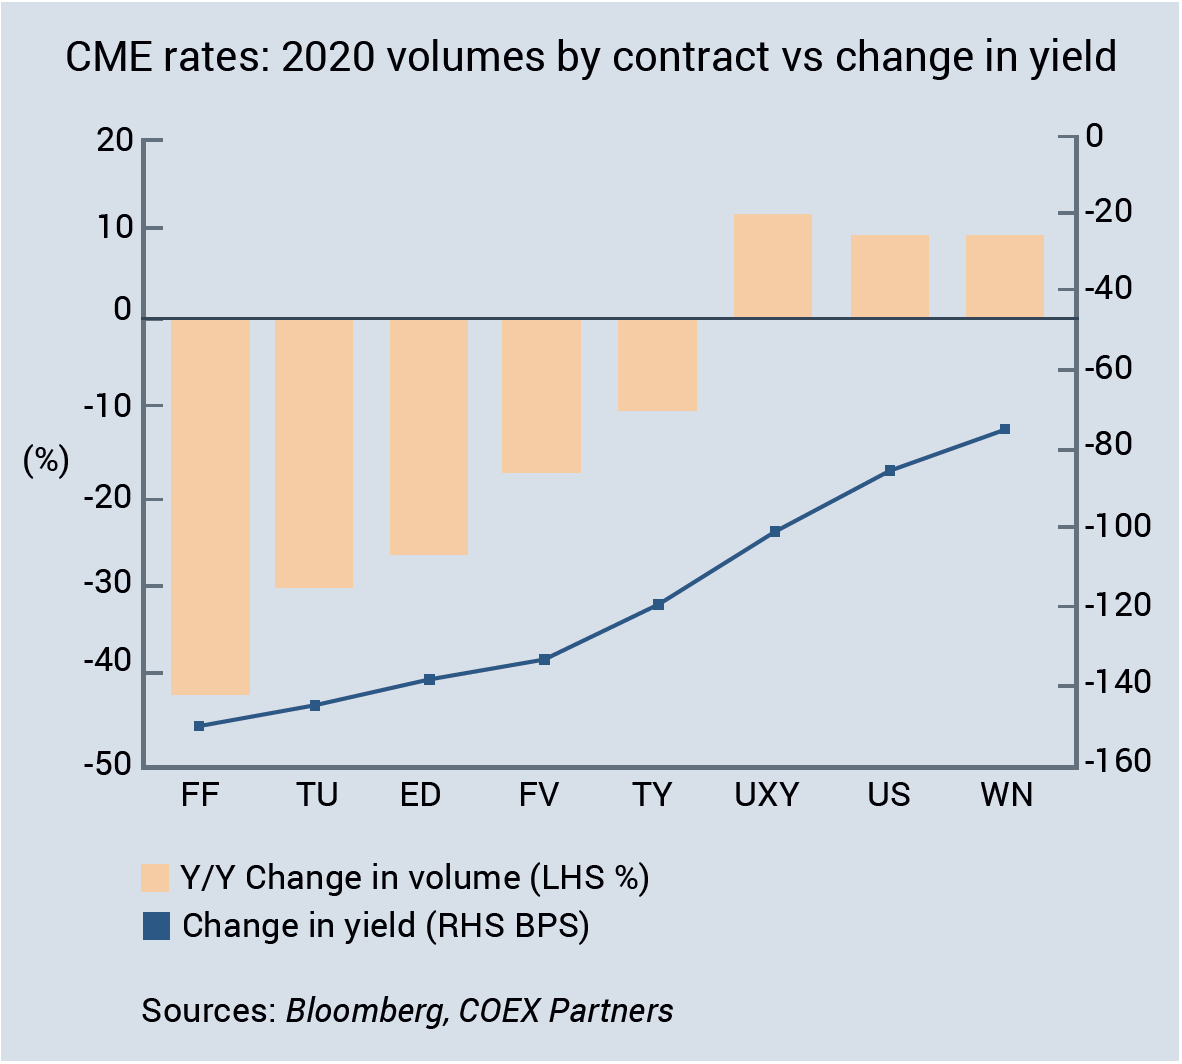 CME rates - 2020 volumes by contract vs change in yield